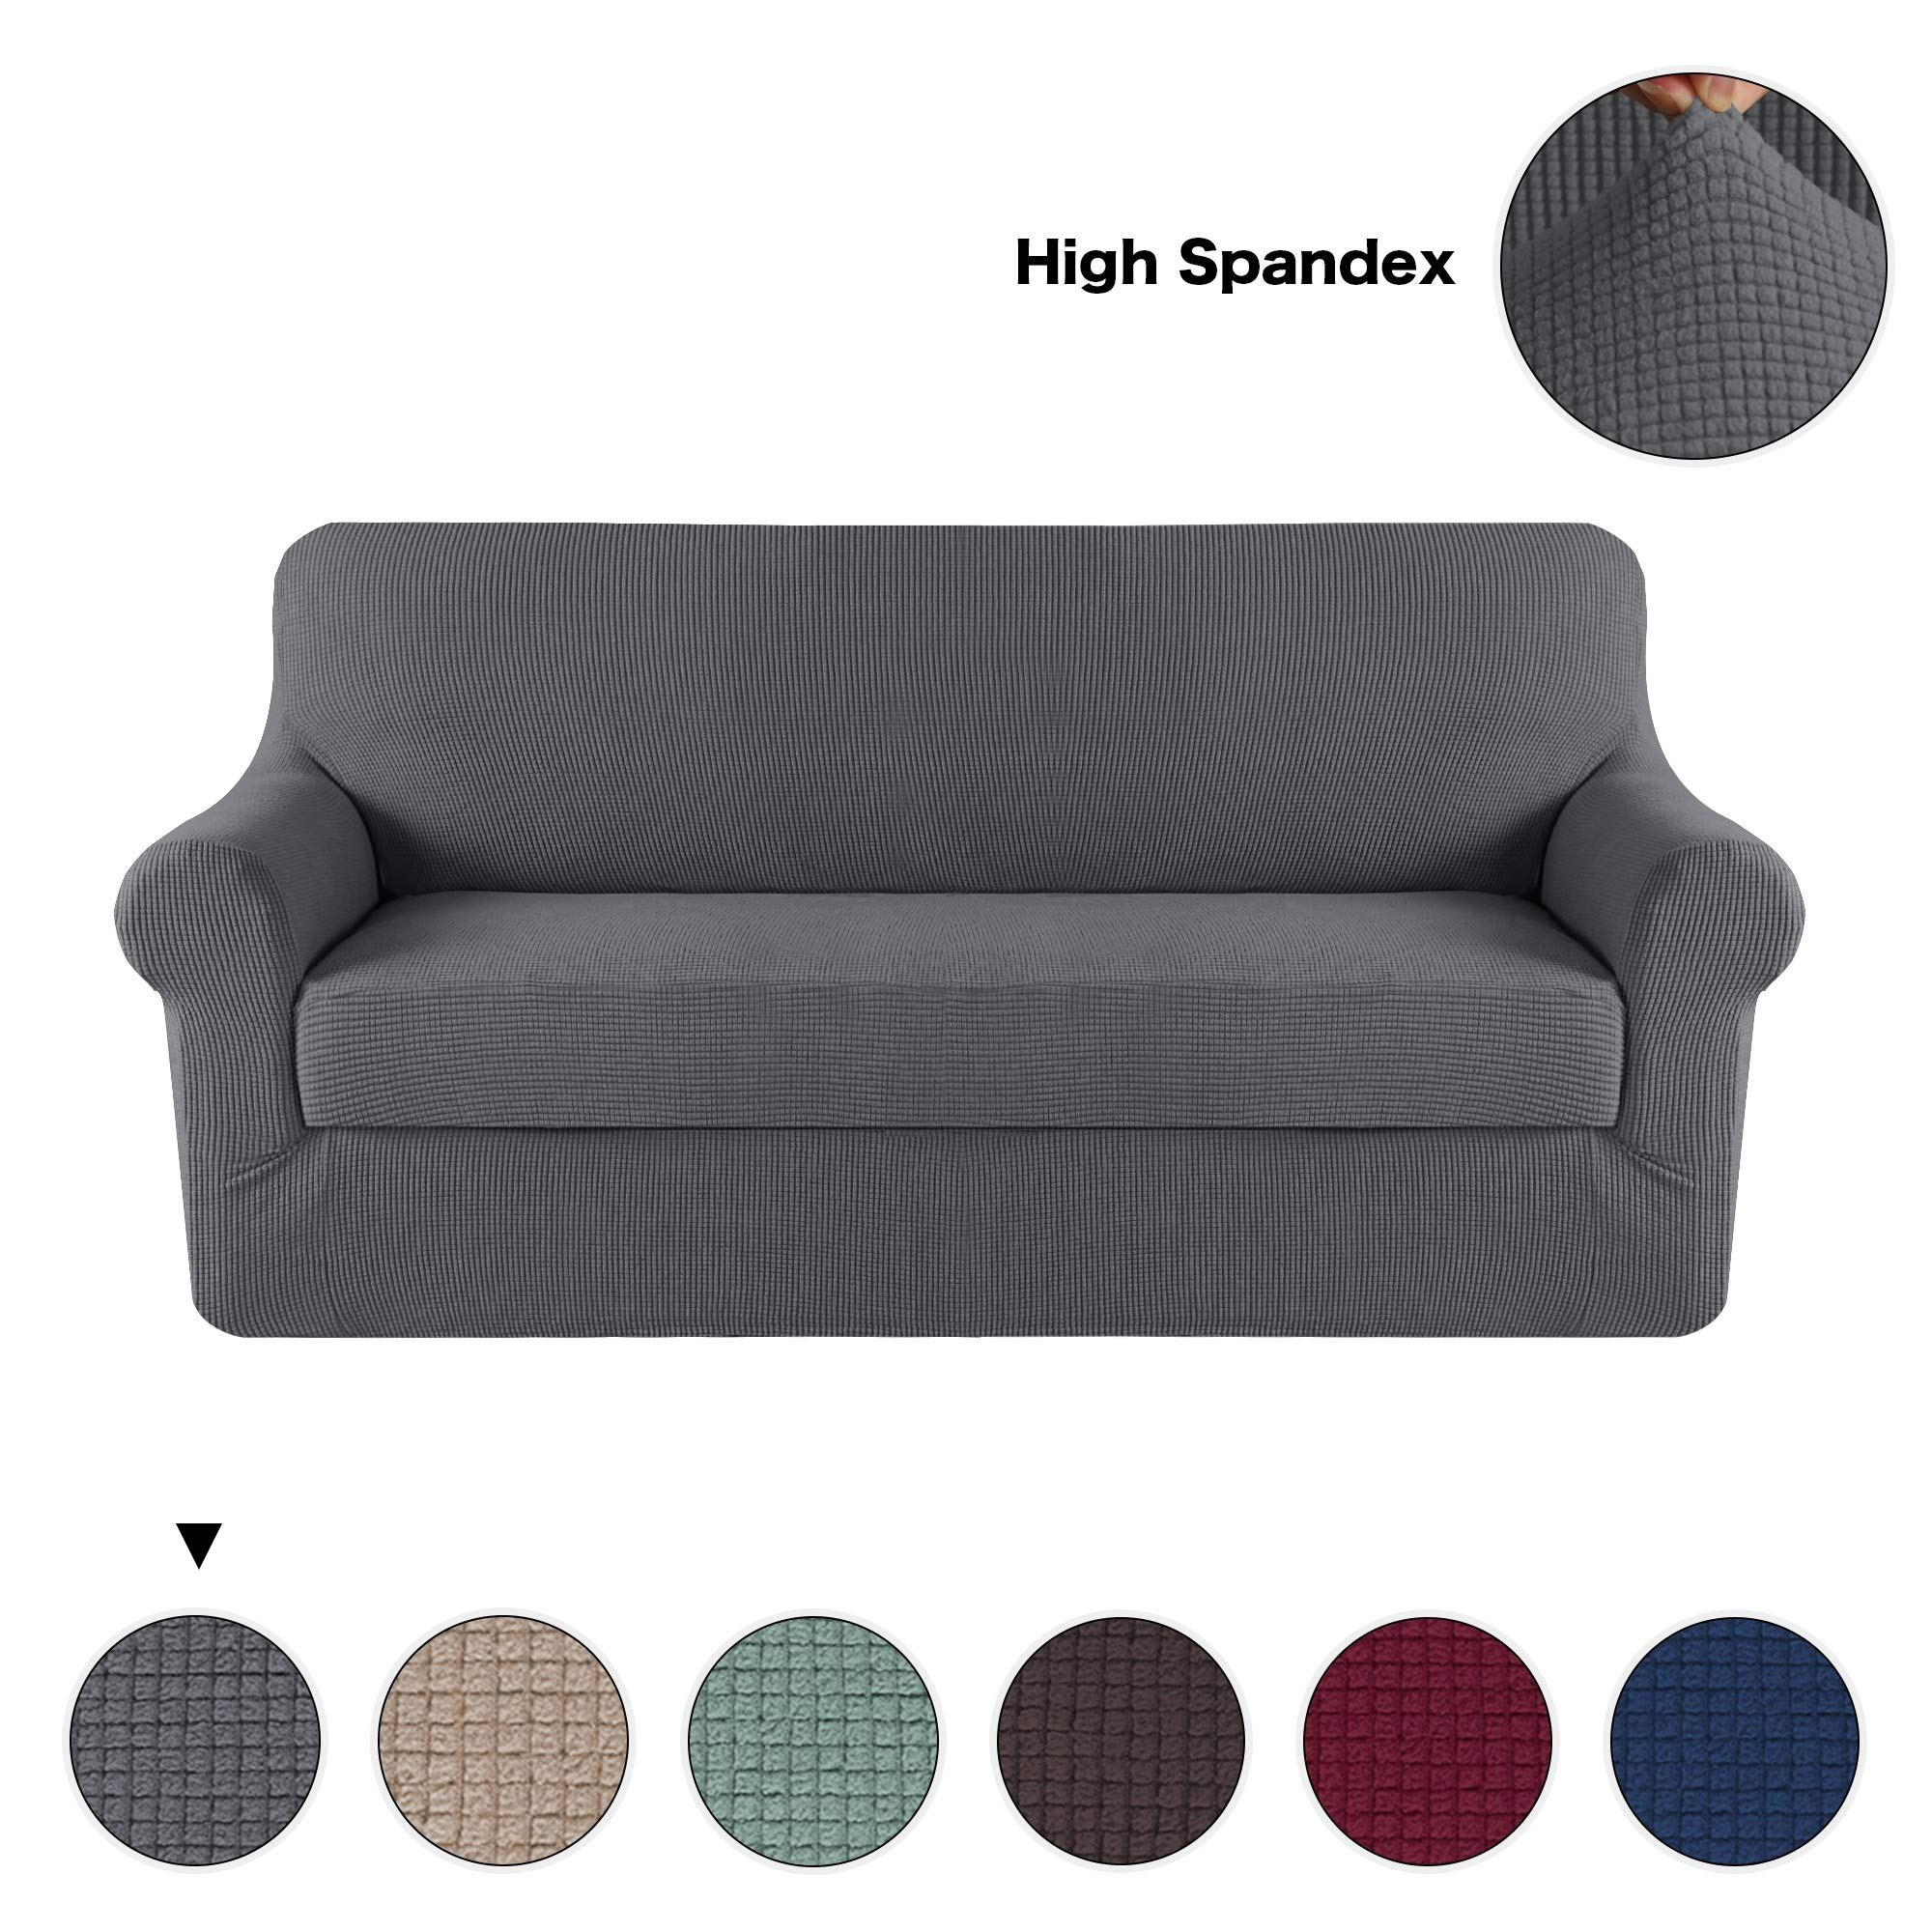 Turquoize Grey Sofa Slipcover 3 Seater Couch Cover Stretch Fabric in Polyester Spandex Elastic Bottom Slipcover 2-Piece(Sofa,Grey)